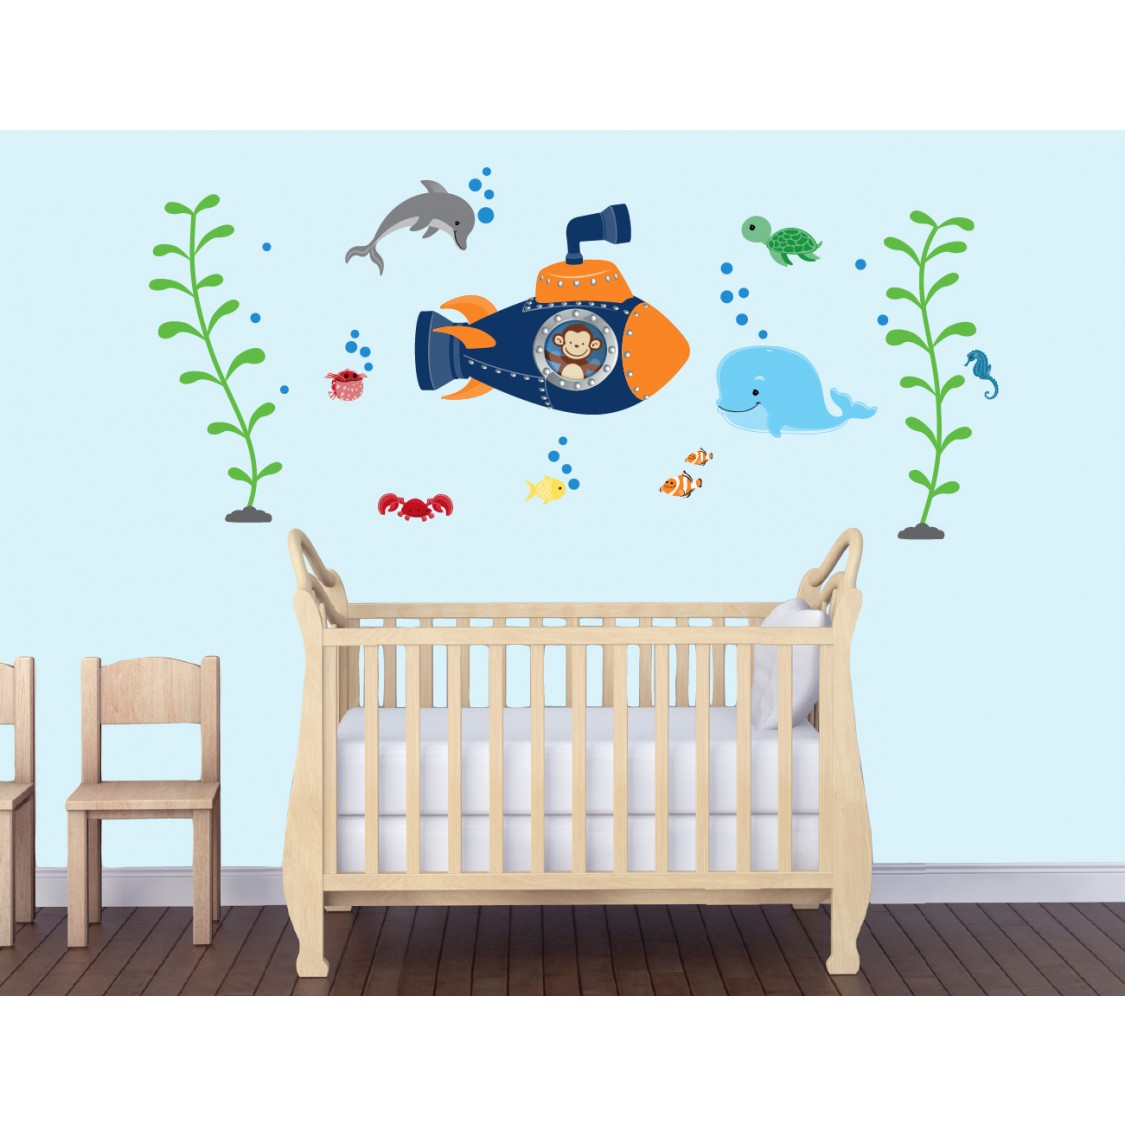 Children s Bedroom Wall Stickers   Under The Sea Wall Decals For Kids. Bedroom Wall Stickers   Under The Sea Wall Decals For Kids